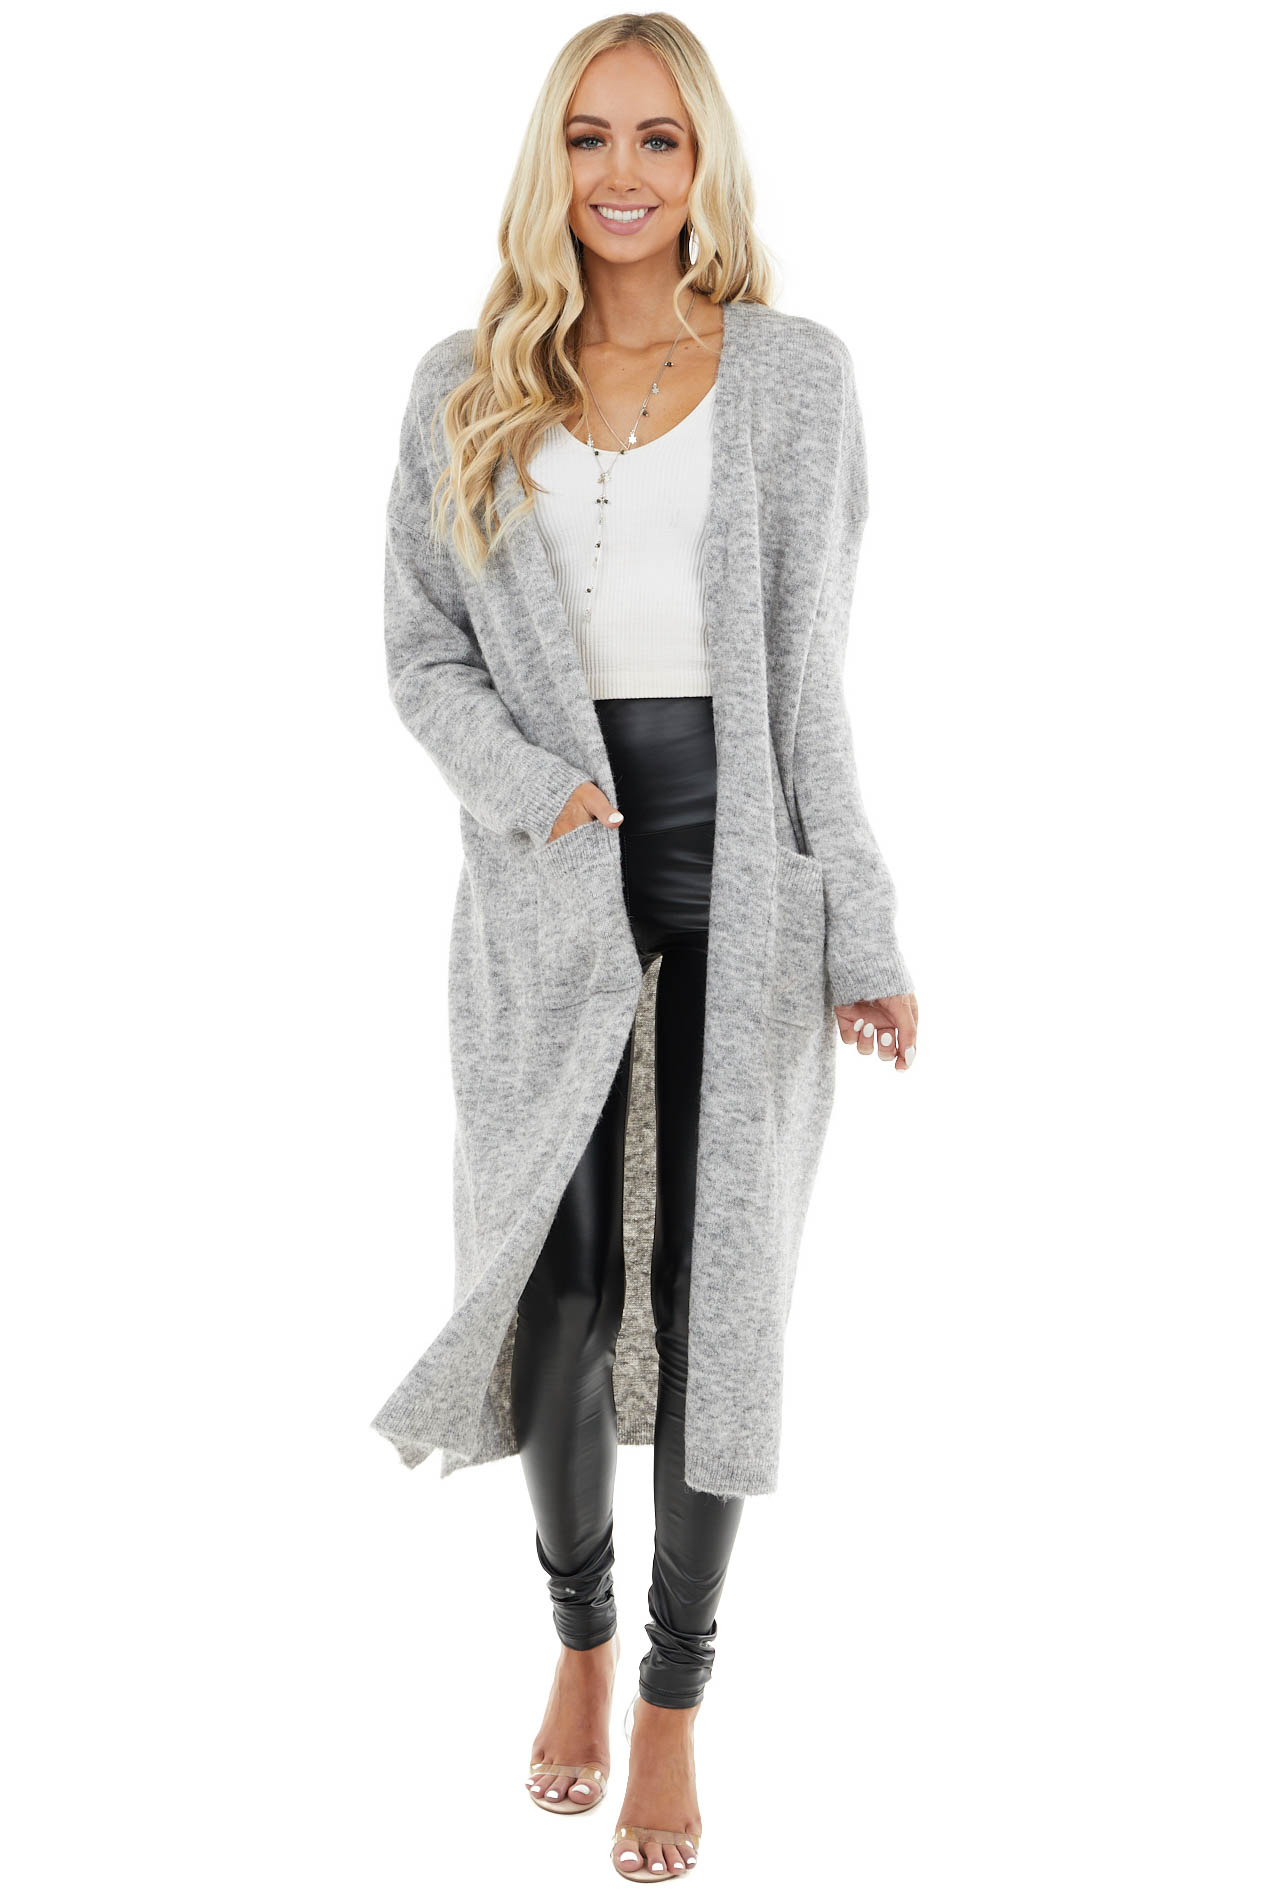 Heather Grey Duster Cardigan with Pockets and Side Slits